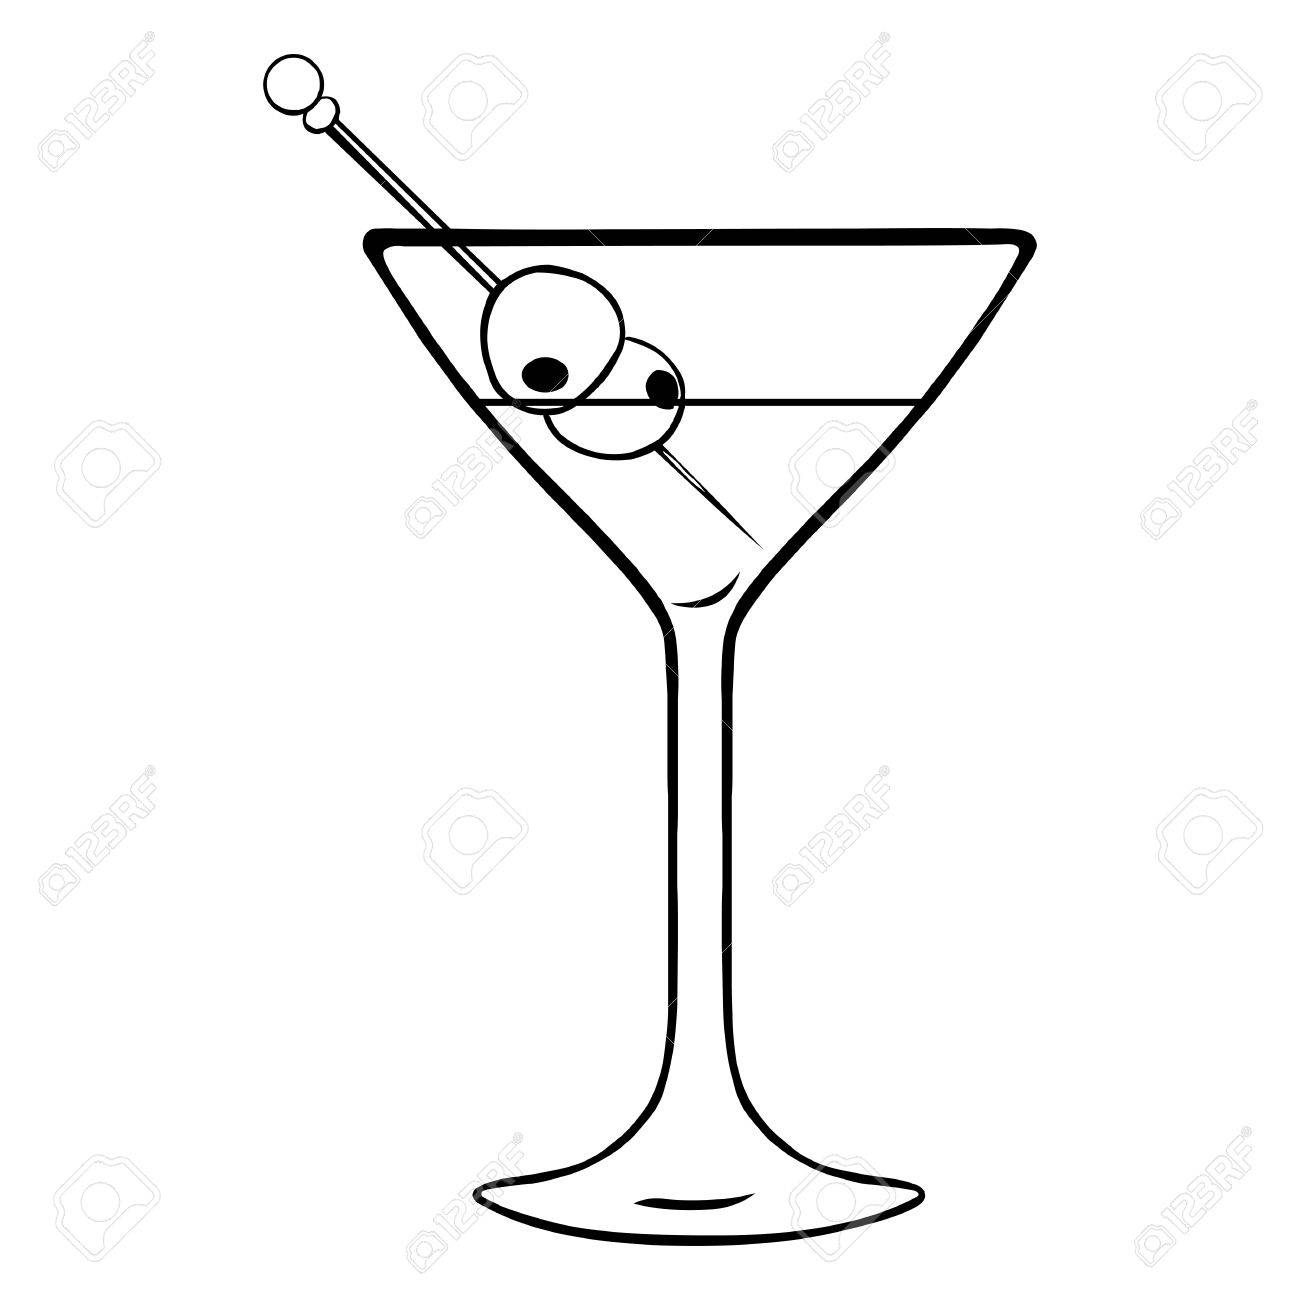 Vector Lineart Martini Glass with Olives on White Background.